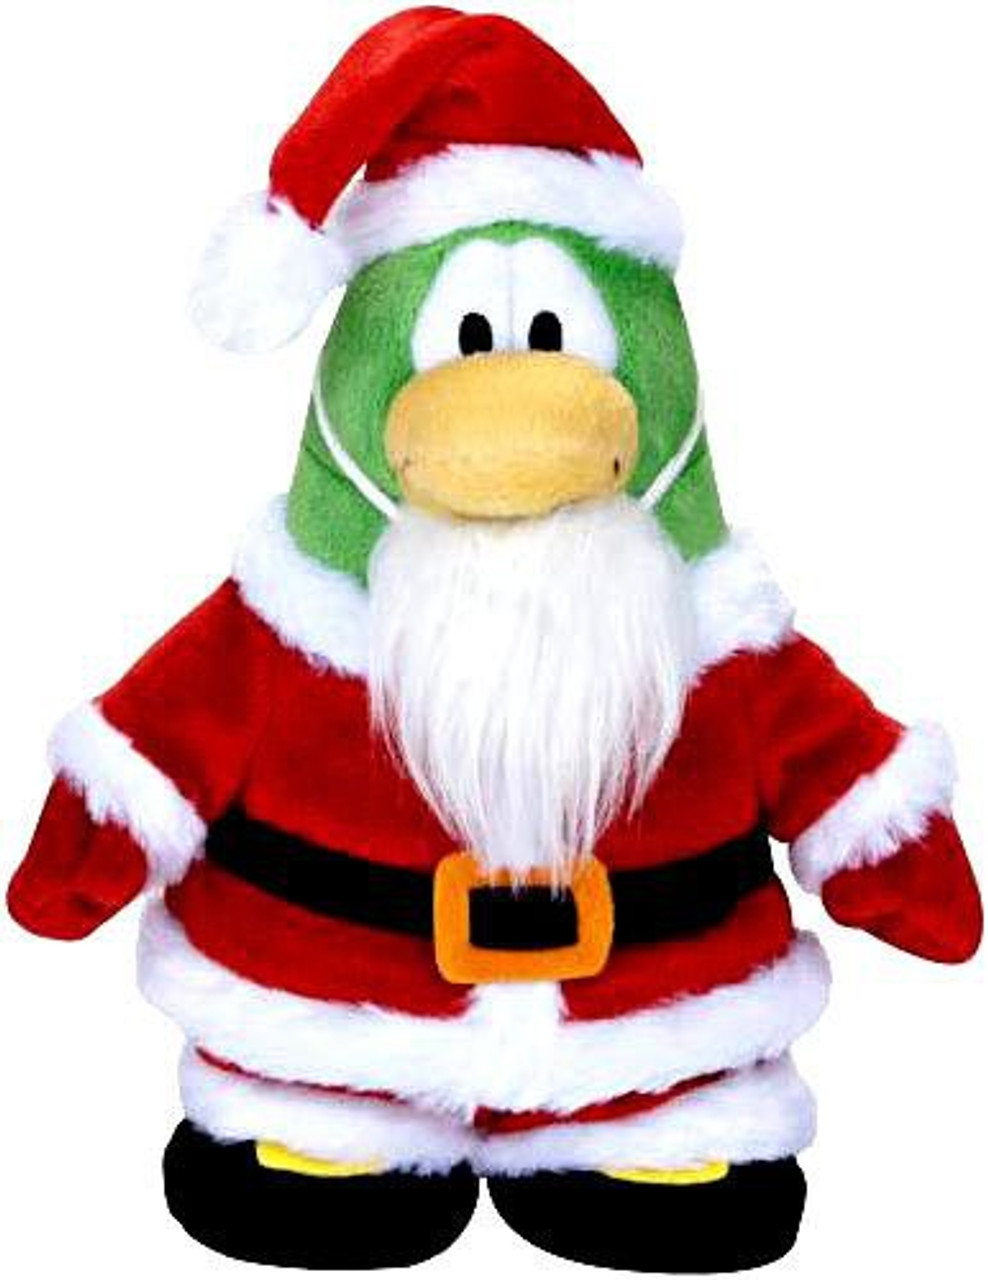 Club Penguin Series 5 Santa 6.5-Inch Plush Figure [Holiday, Version 2]